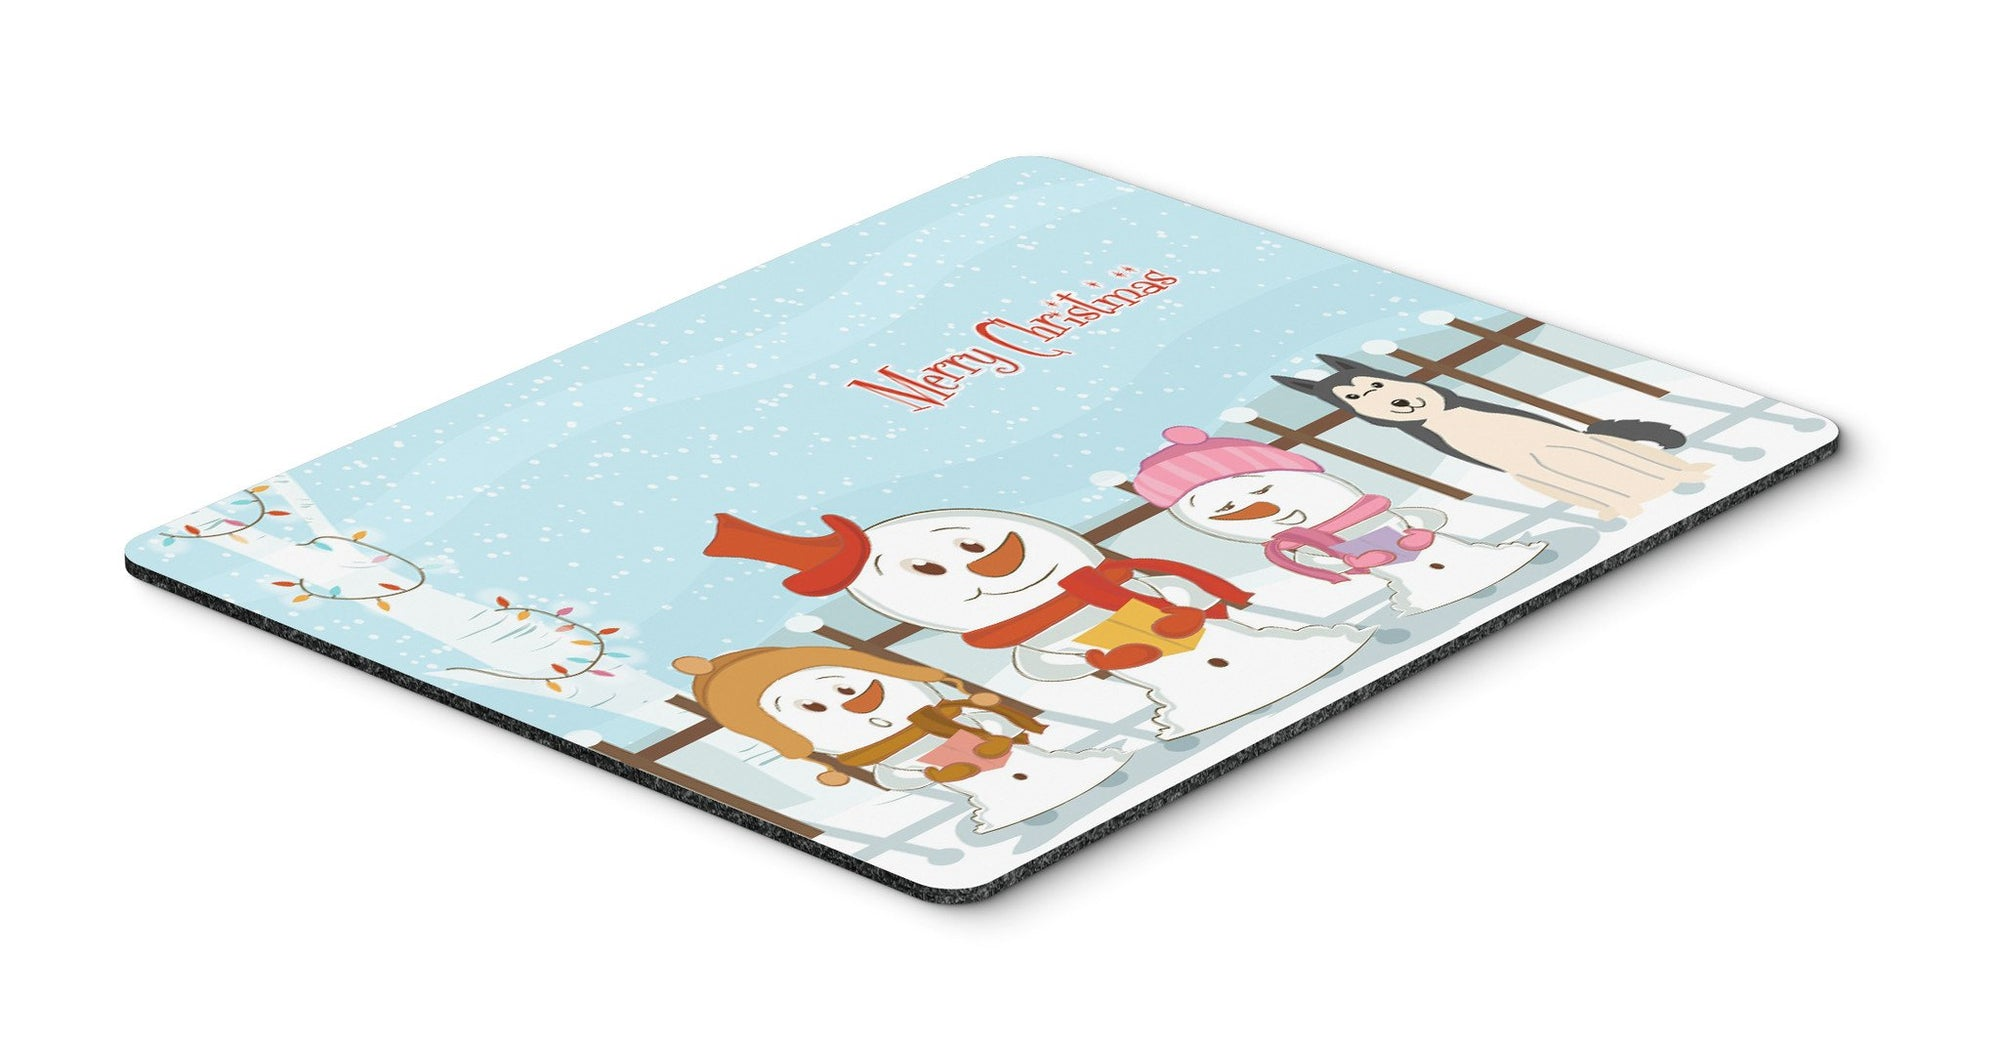 Merry Christmas Carolers West Siberian Laika Spitz Mouse Pad, Hot Pad or Trivet BB2356MP by Caroline's Treasures